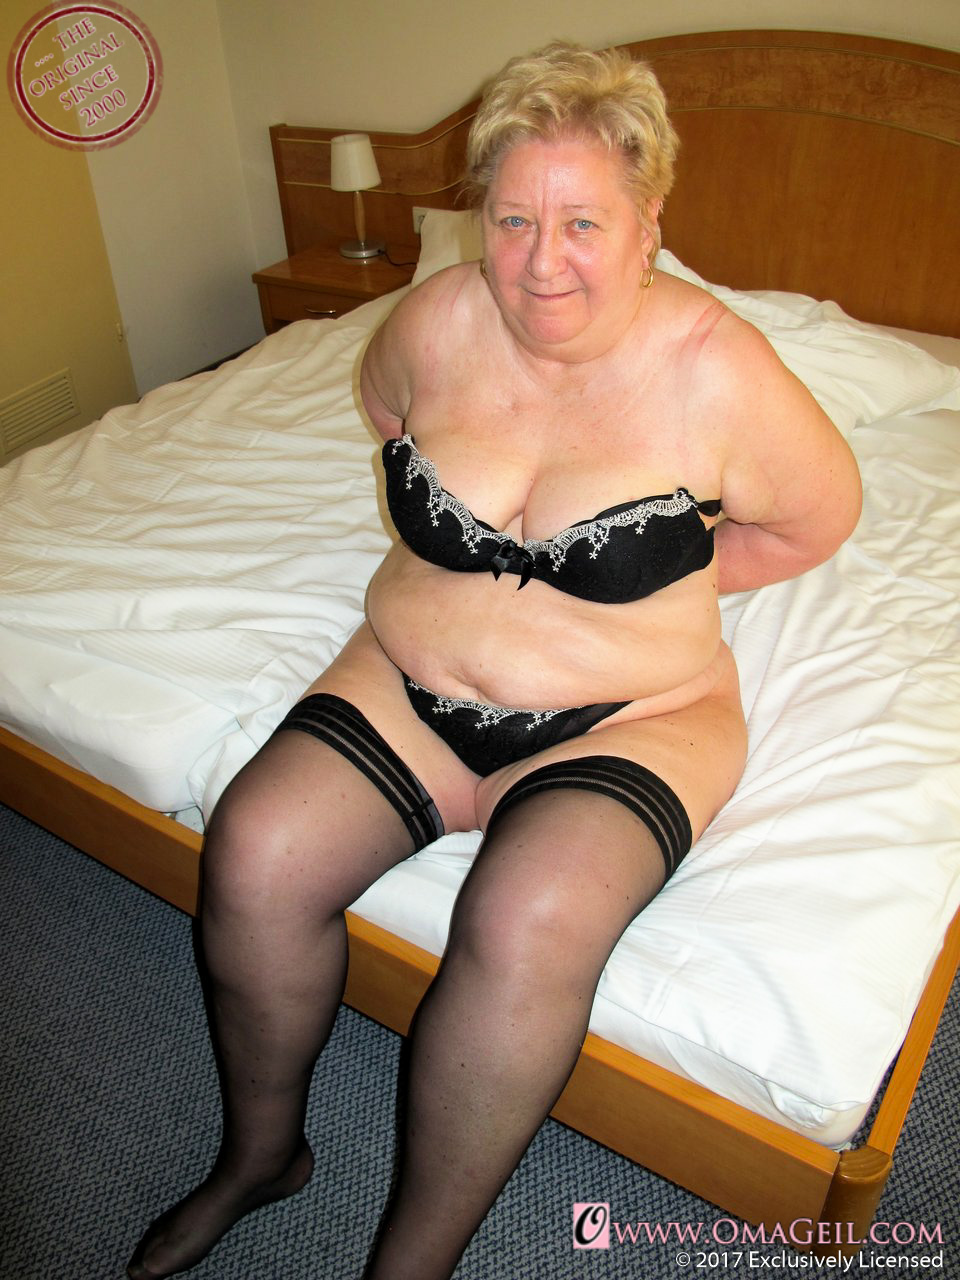 Hot Granny Porn Pictures And Vids - Free Granny And Mature -9137